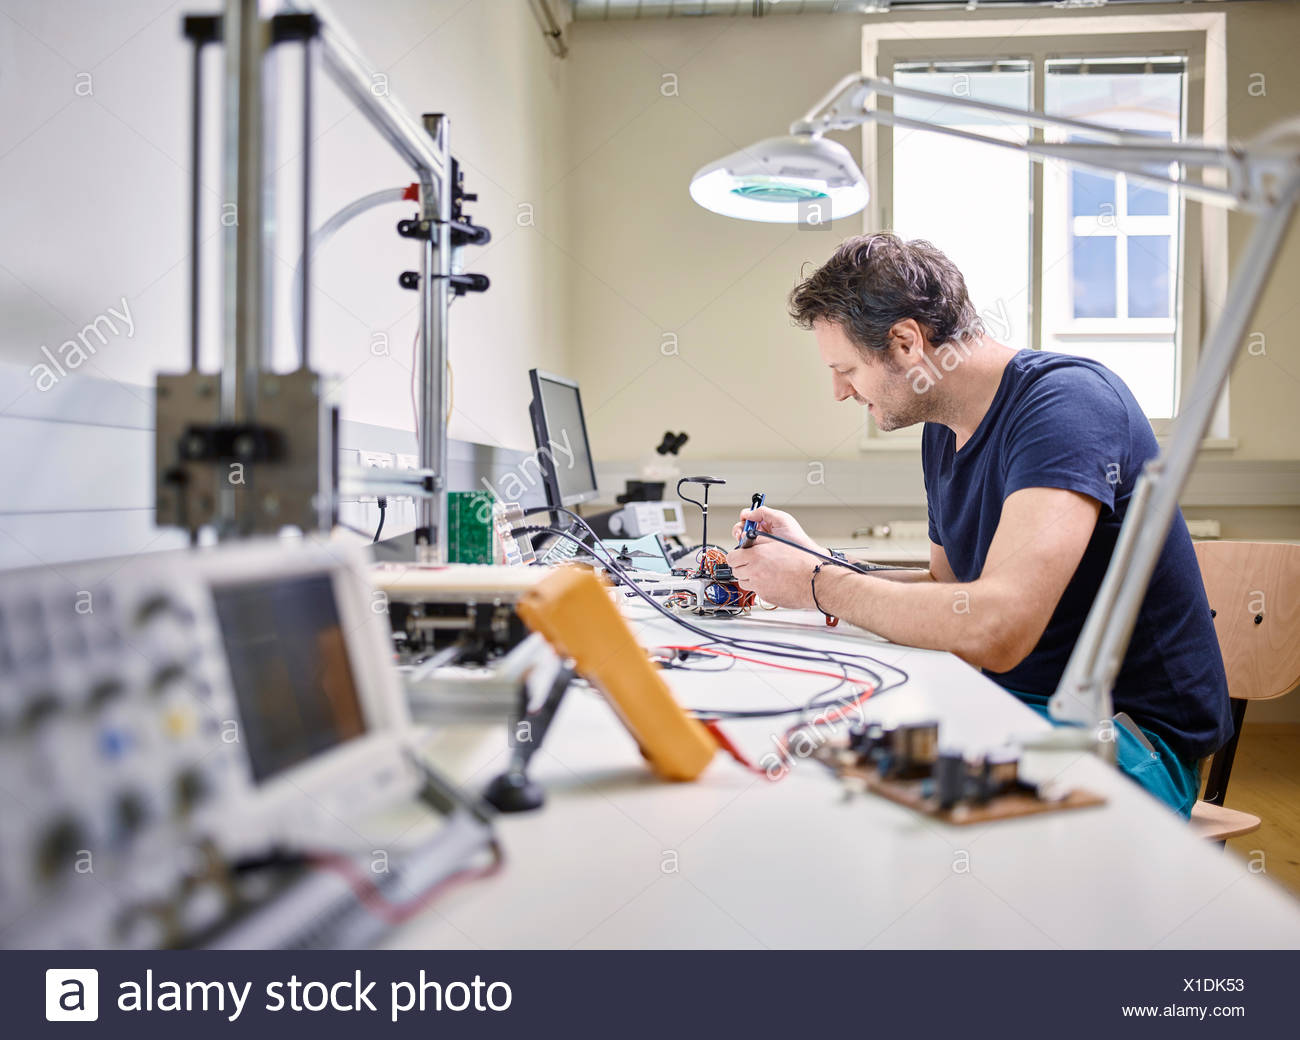 Man soldering in electronics laboratory - Stock Image